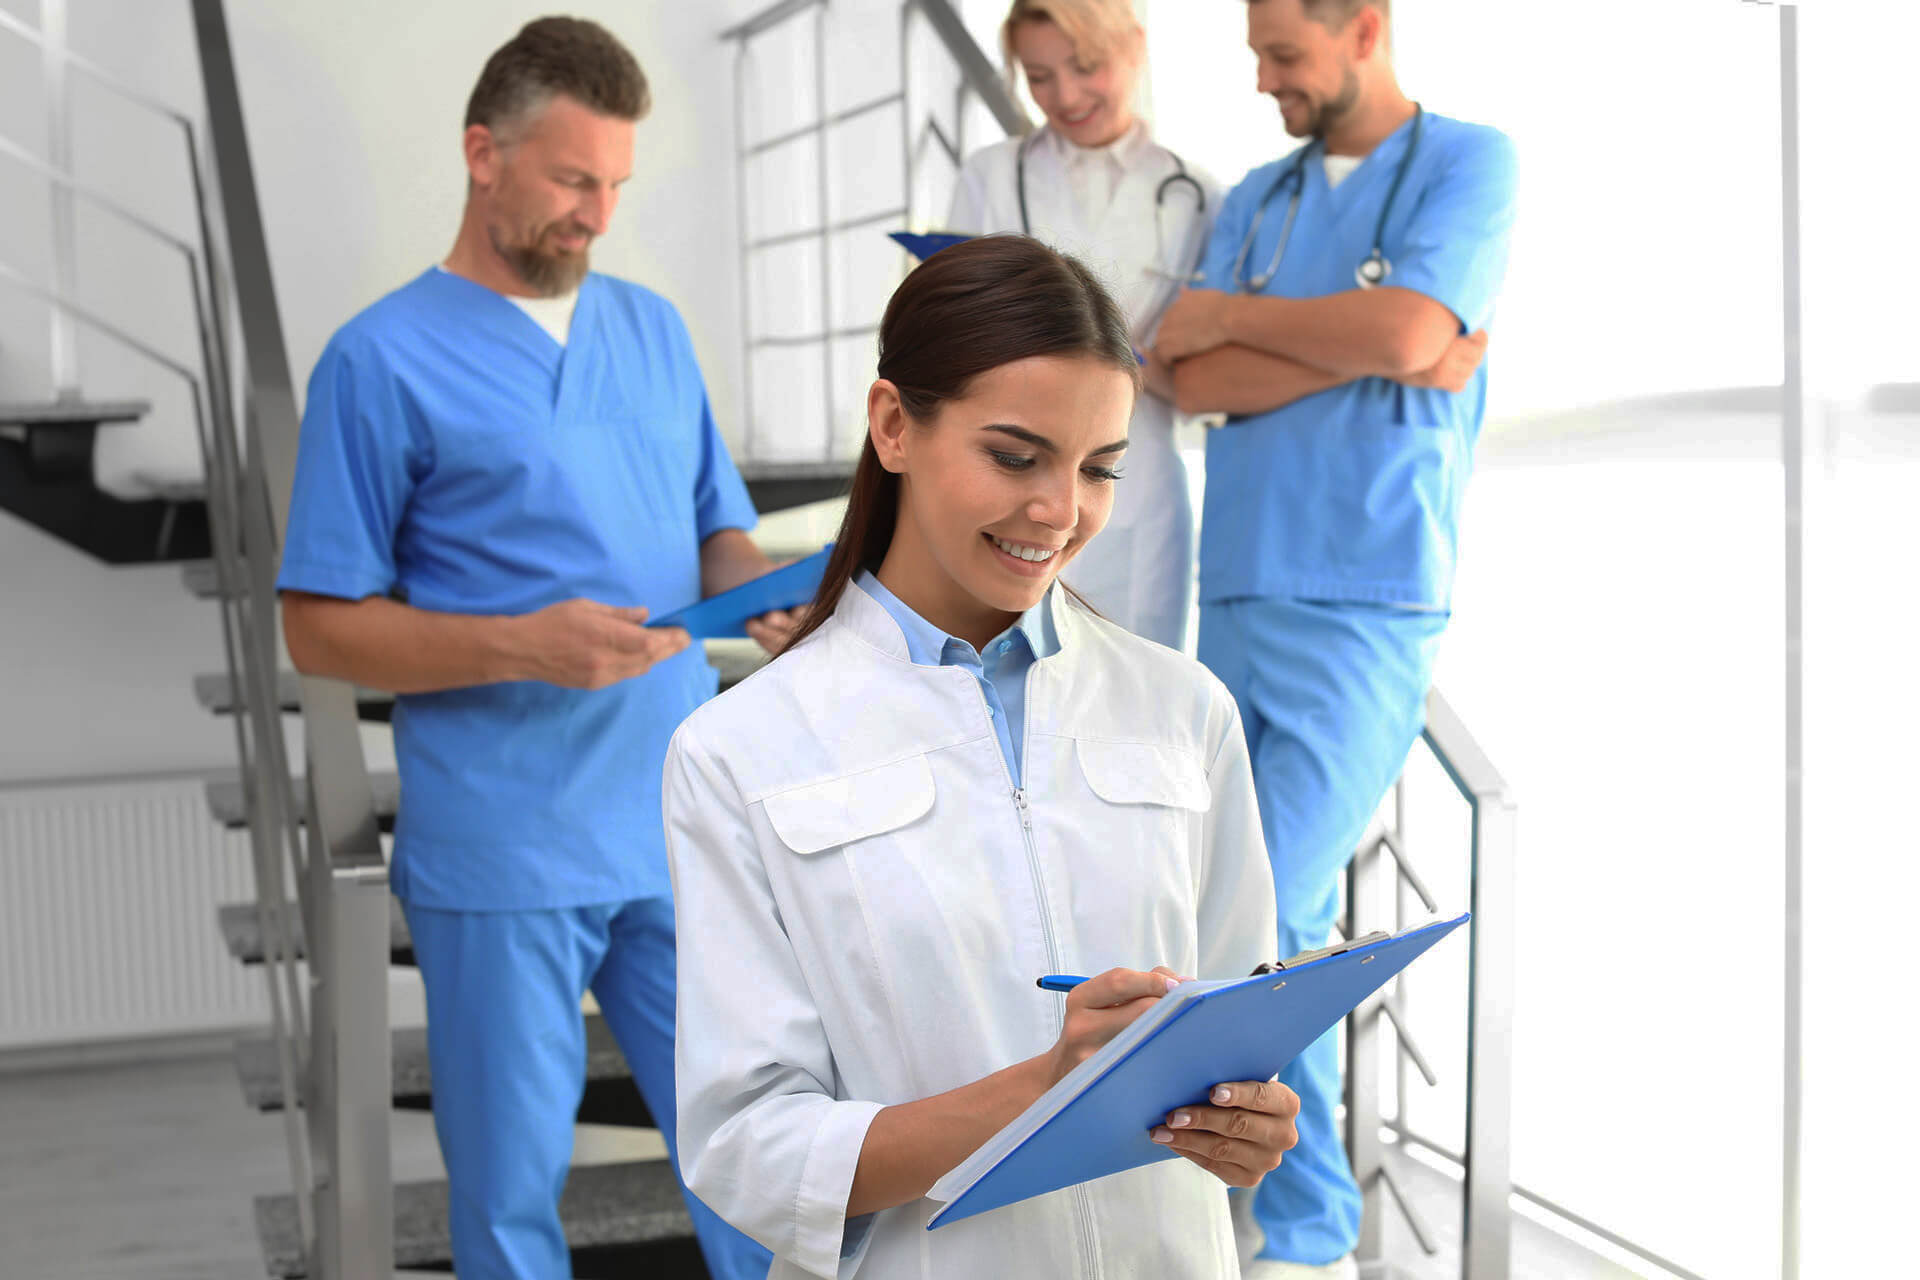 Applying Your Past Experiences to Your Medical Training